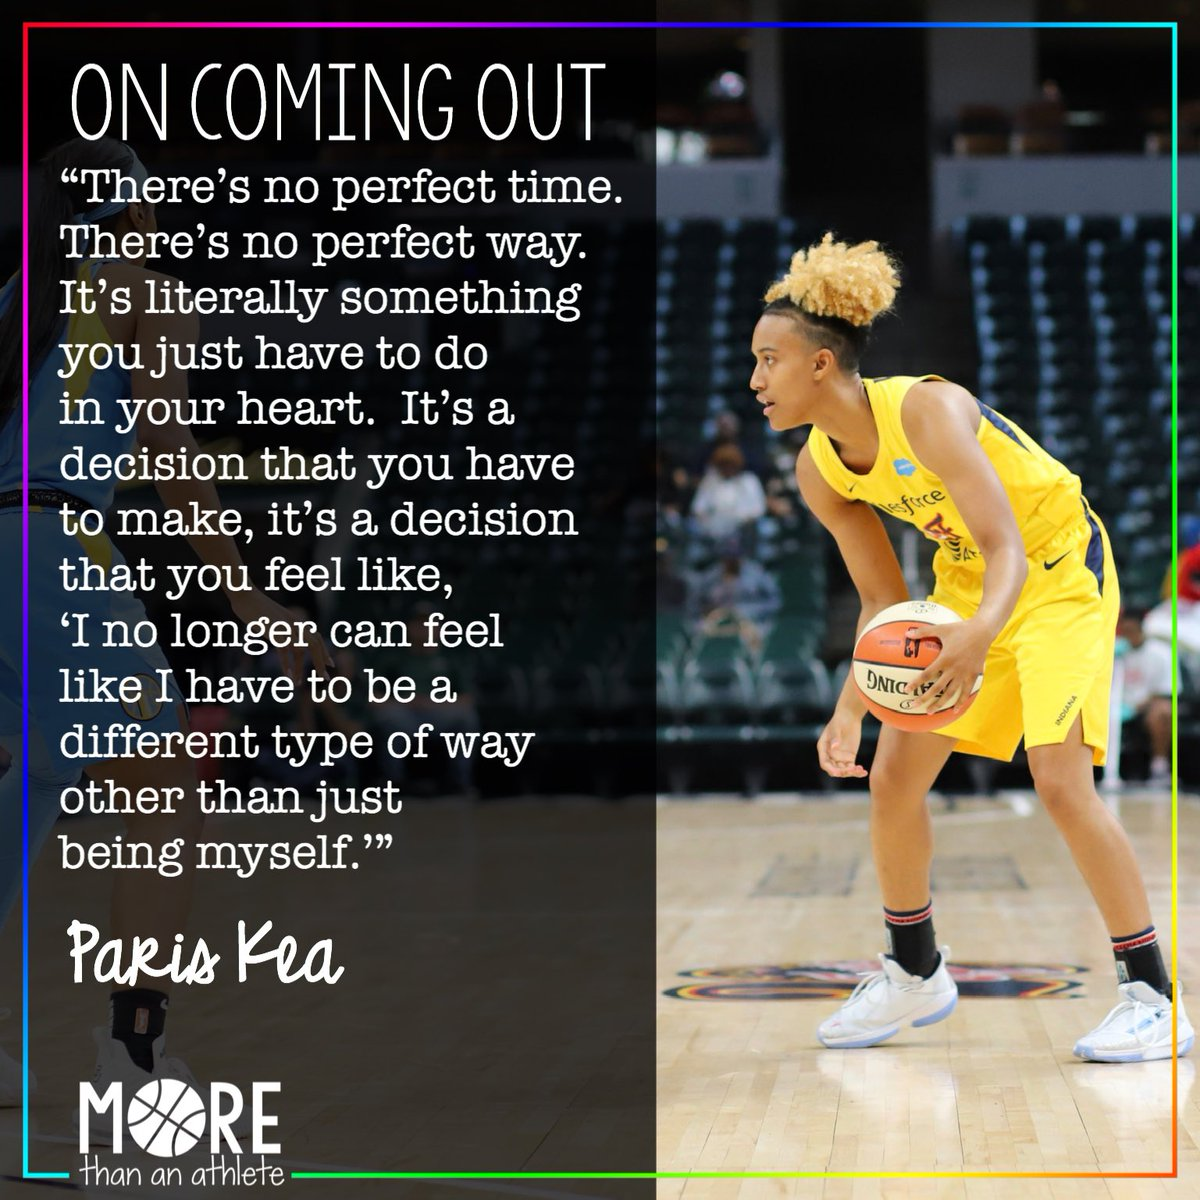 Rookie @TheReal_41 on coming out. 🏳️🌈   #fever20 #indianafever #wnba #pariskea #uncwbb https://t.co/mZWDsL83J8